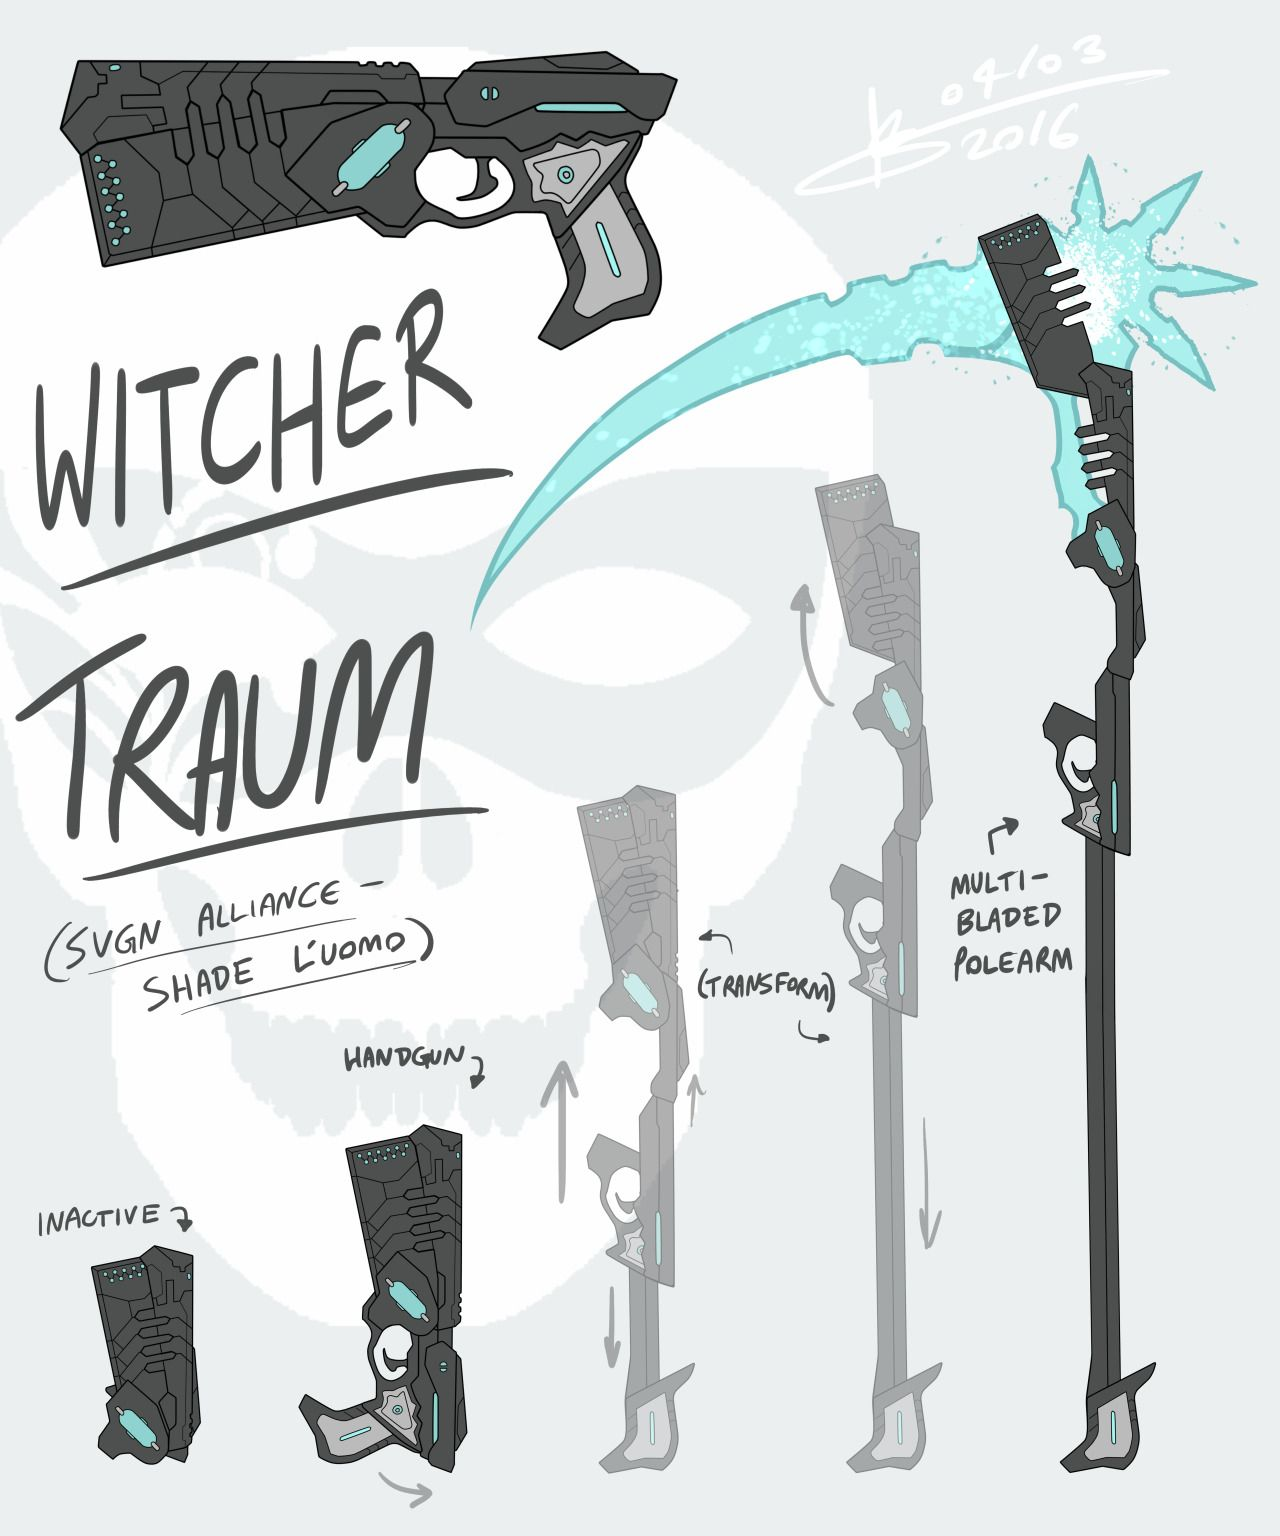 RWBY OC Weapon - Witcher TraumAfter a lot of deliberation I finally